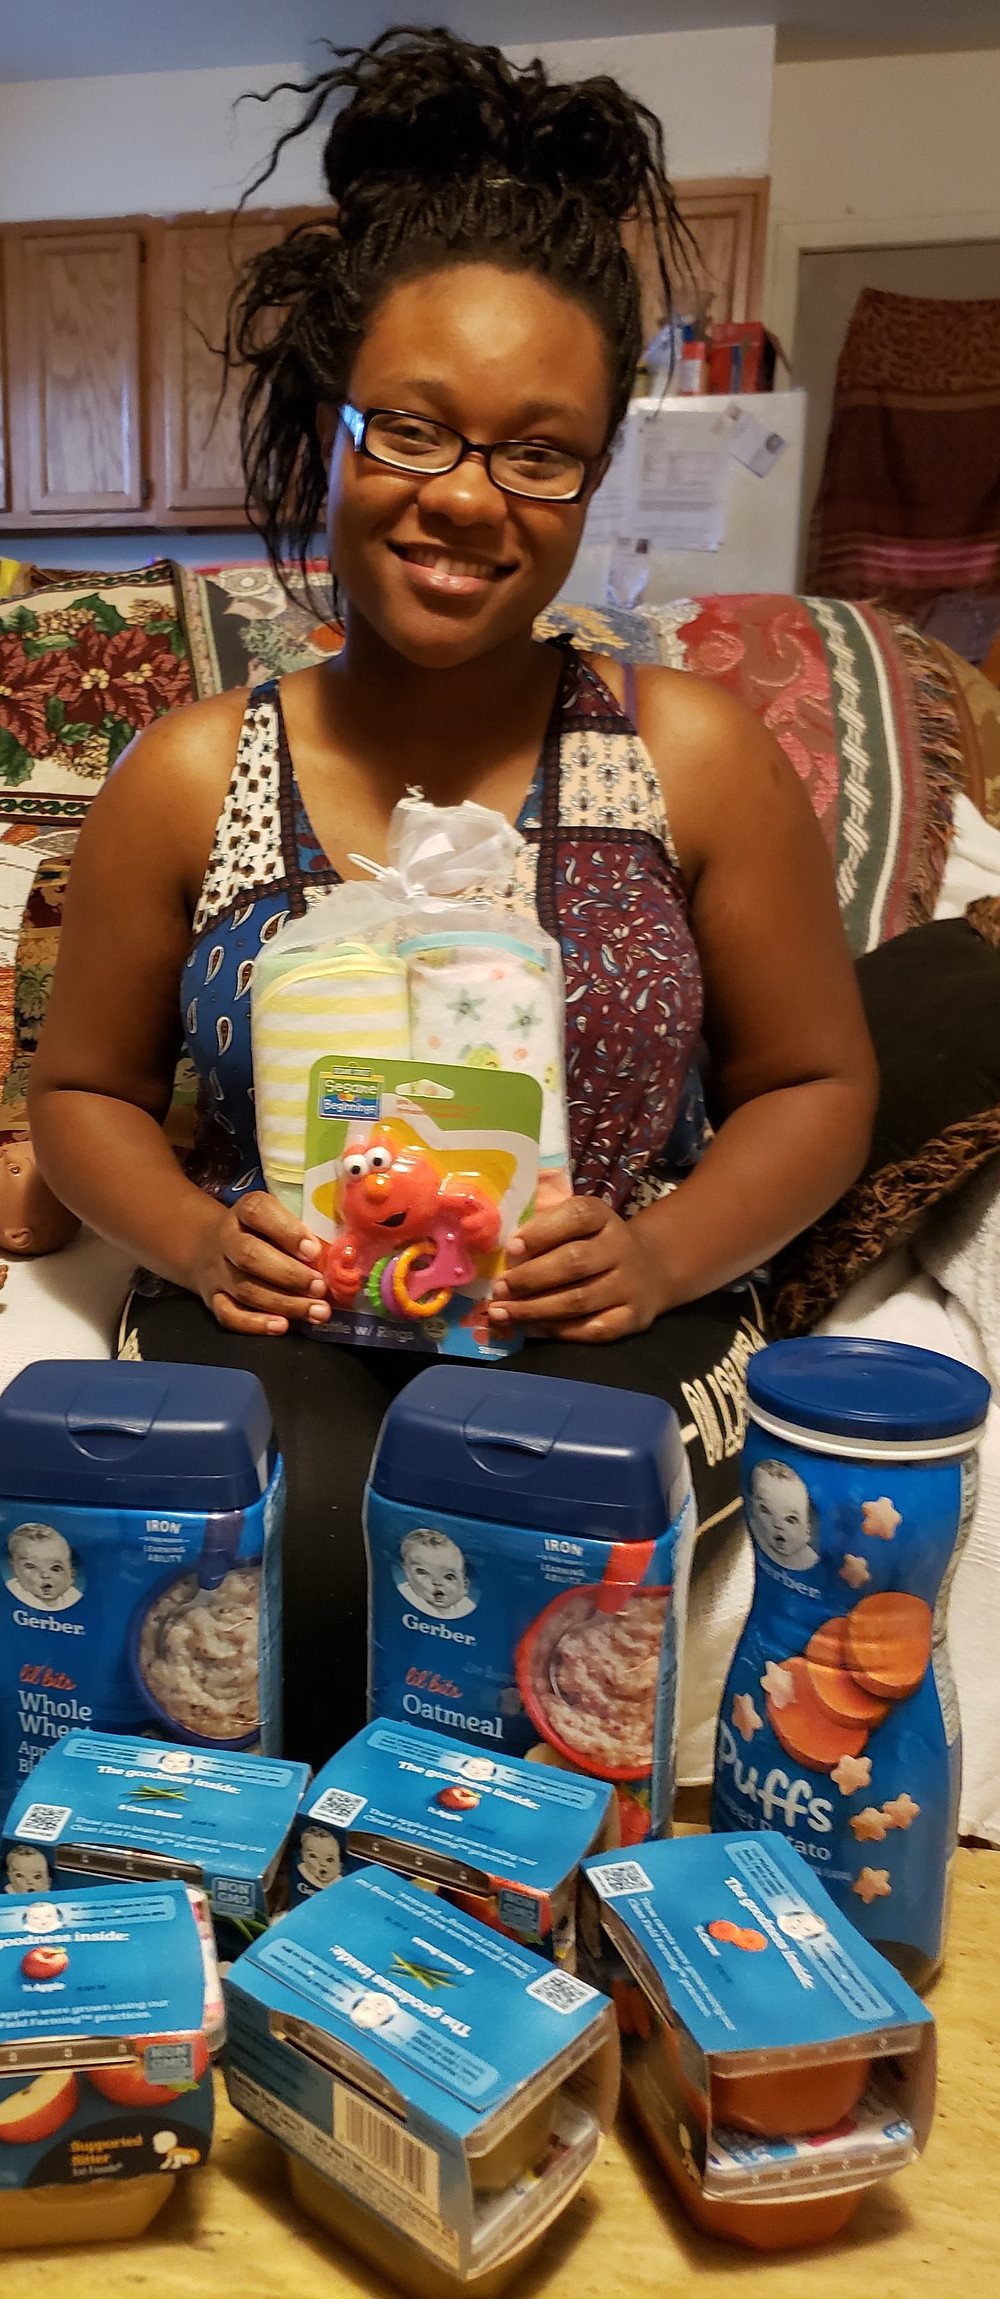 Mother of Sponsored Infant with Food Items